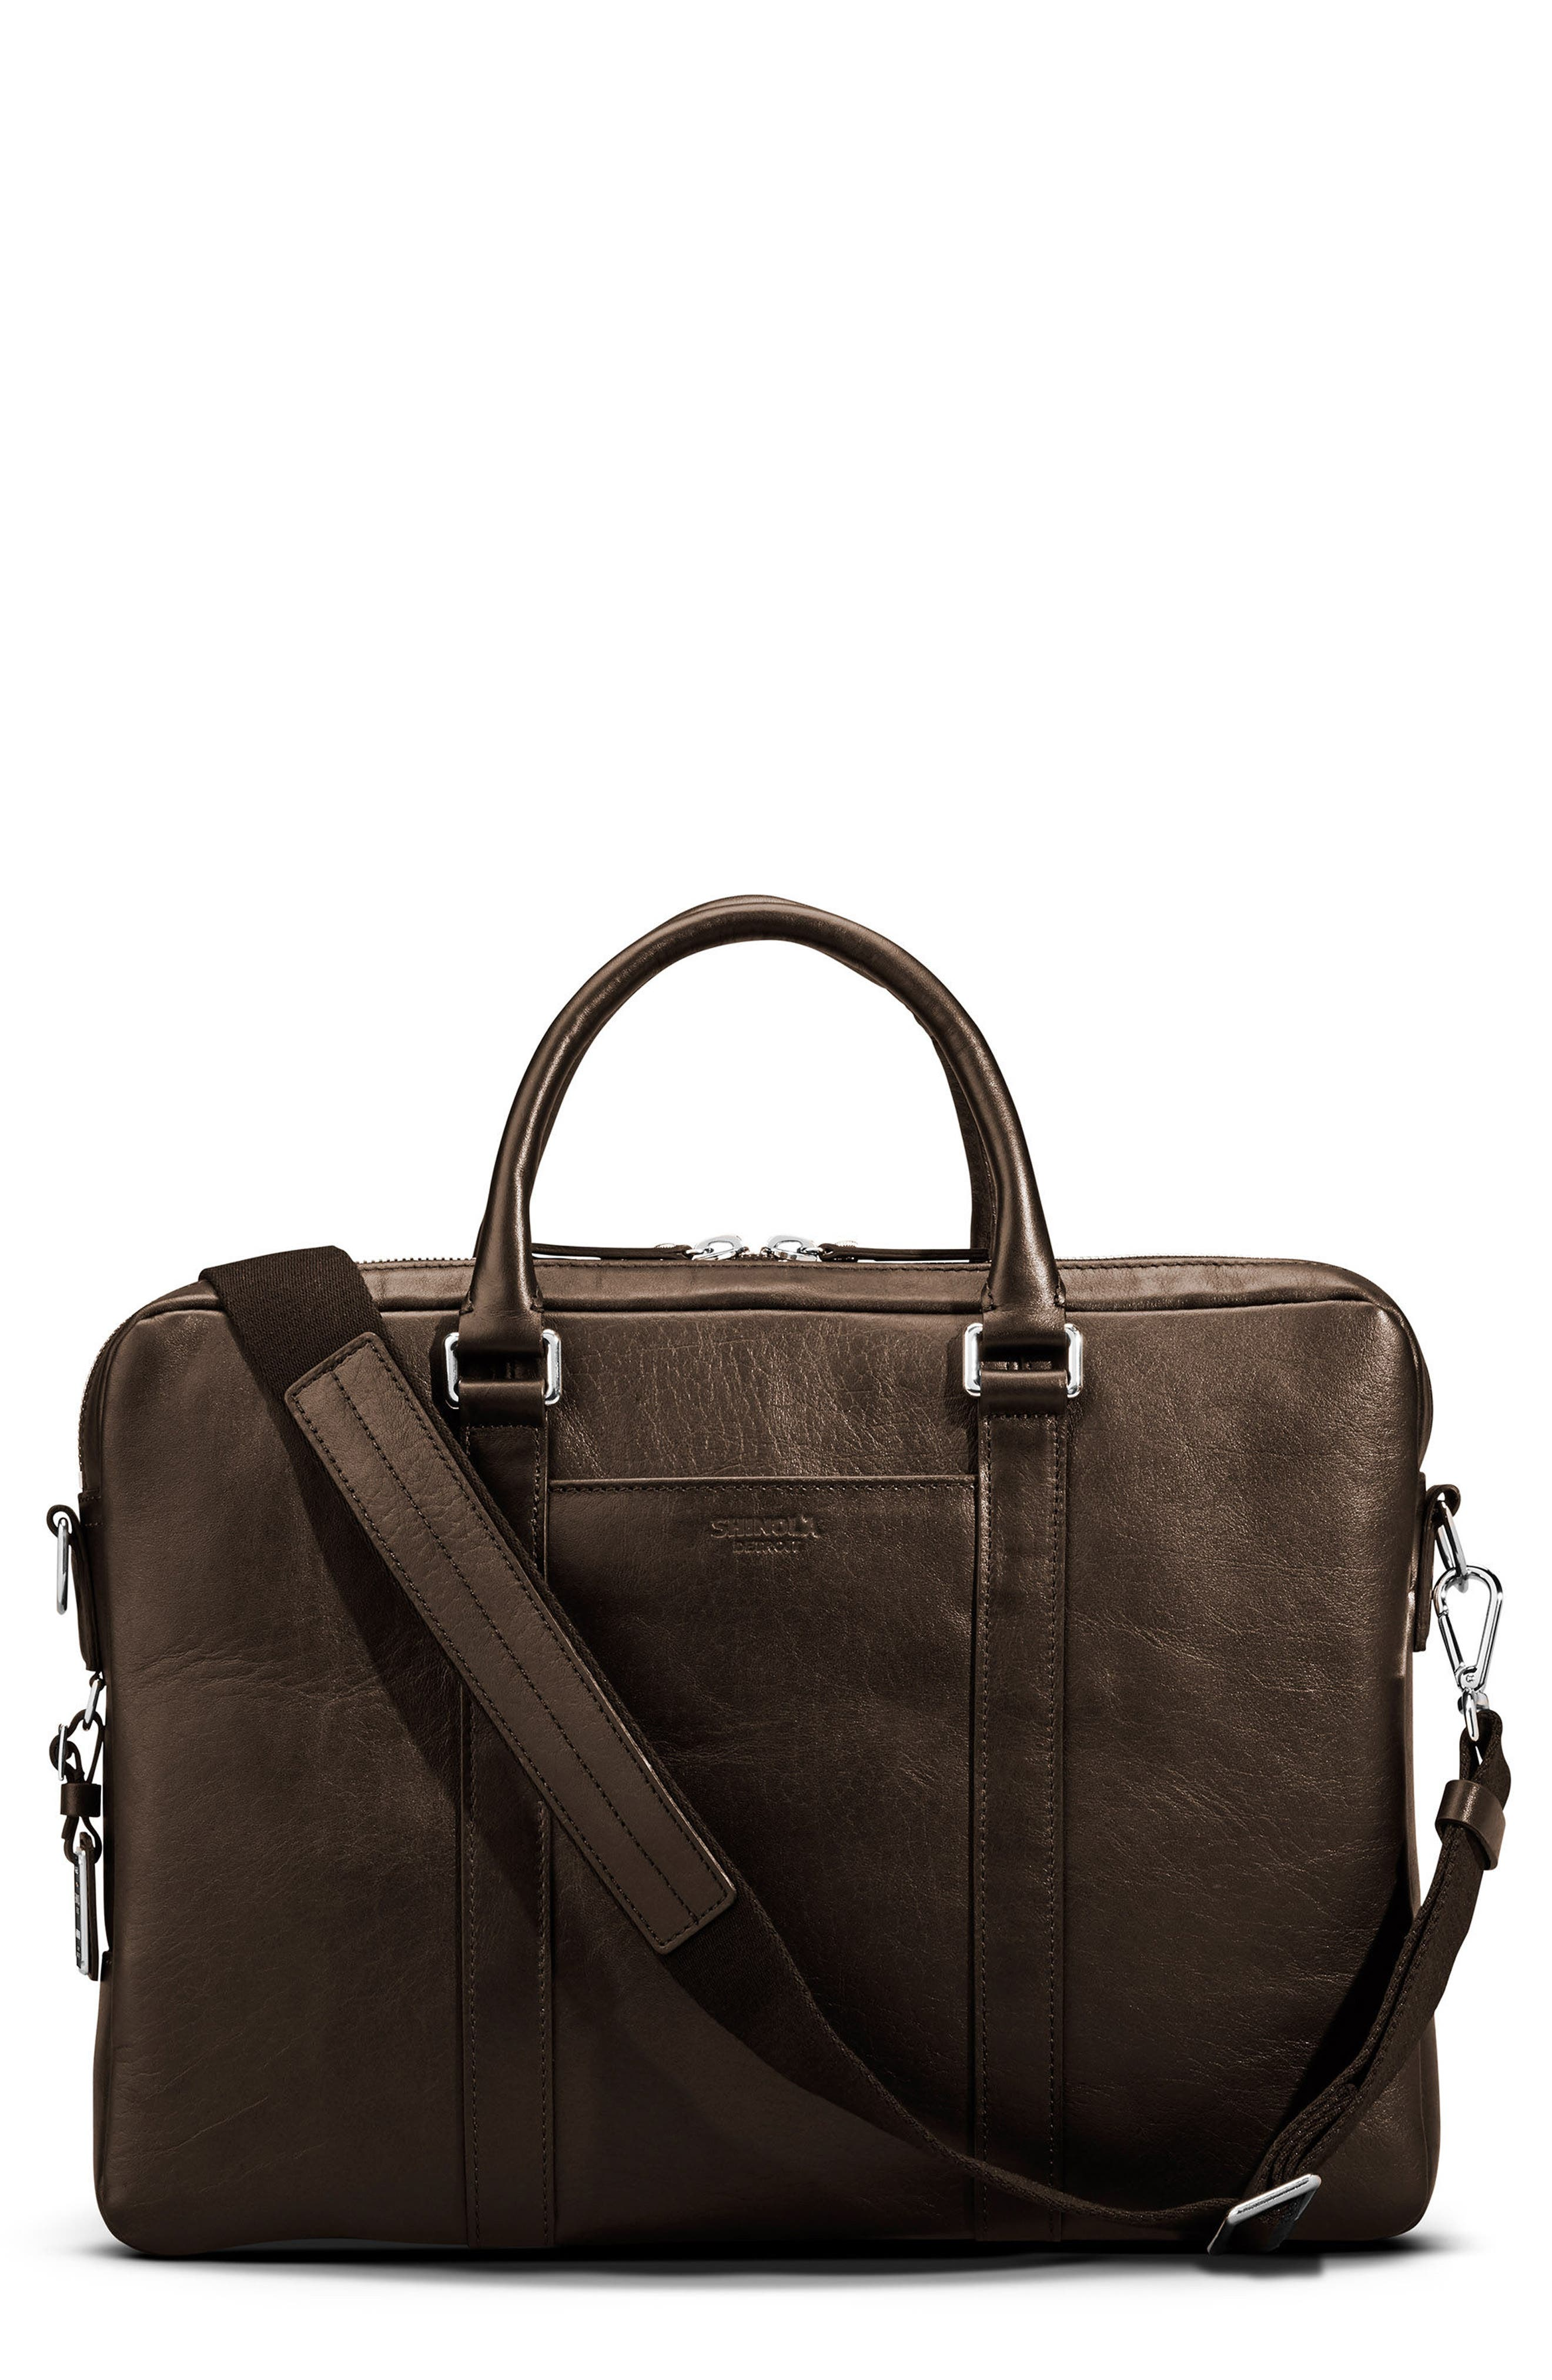 SHINOLA Signature Leather Computer Briefcase, Main, color, DEEP BROWN